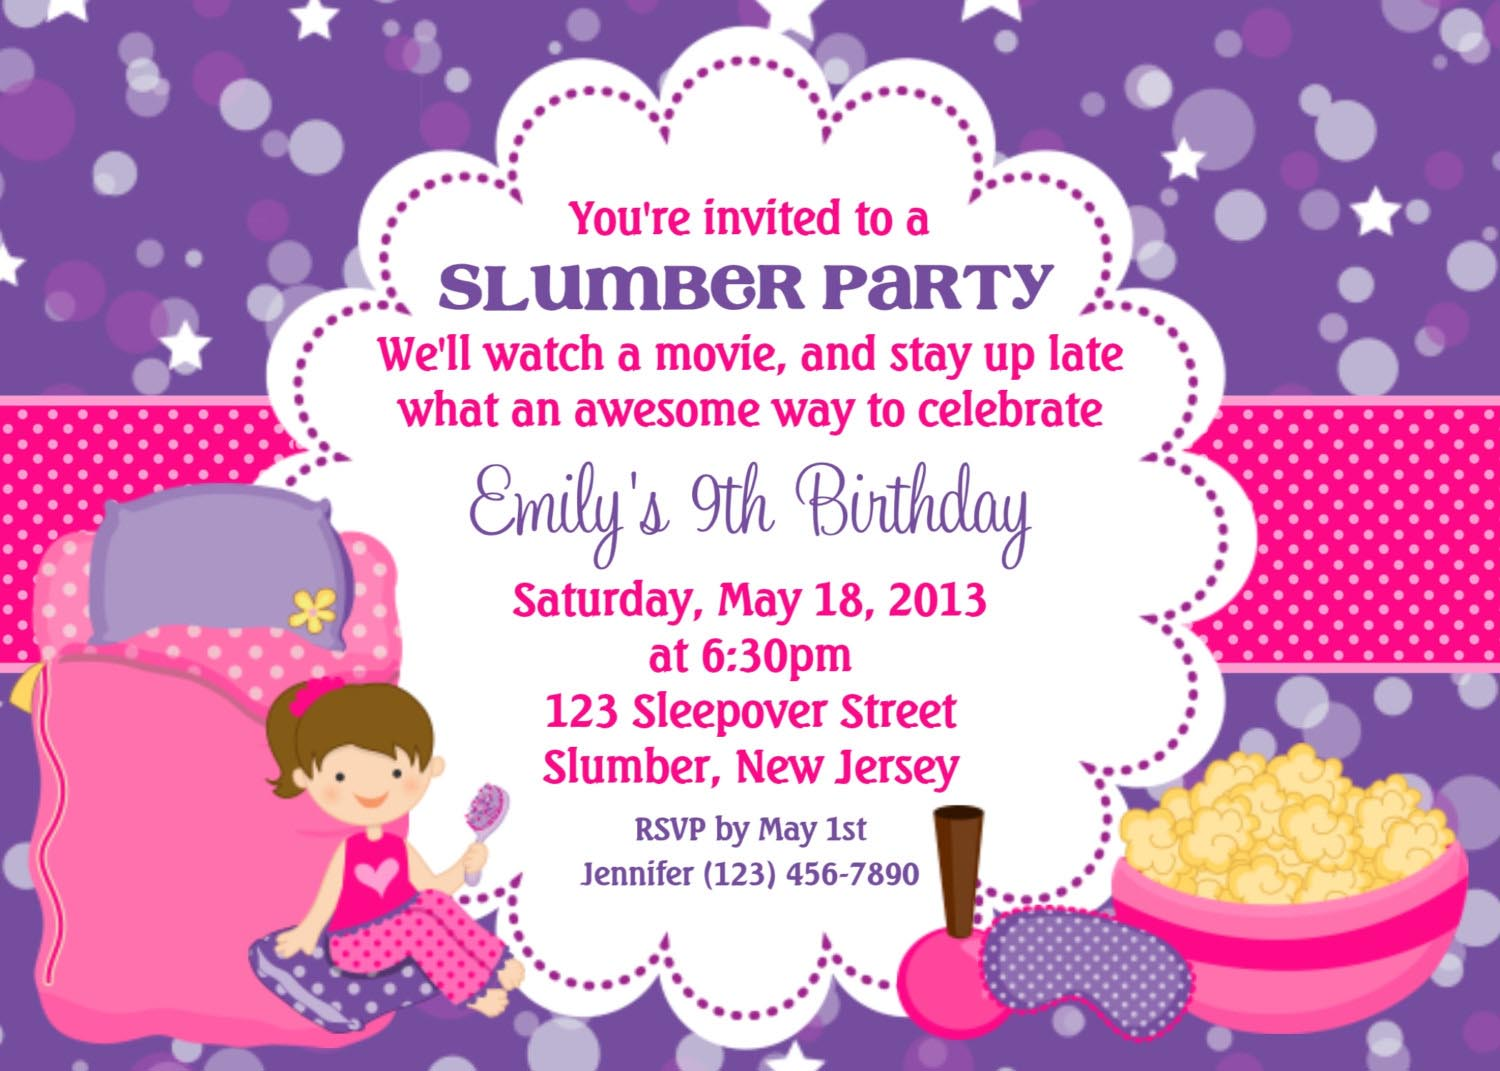 printable spa party invitations templates com spa slumber party invitations printable wedding invitation